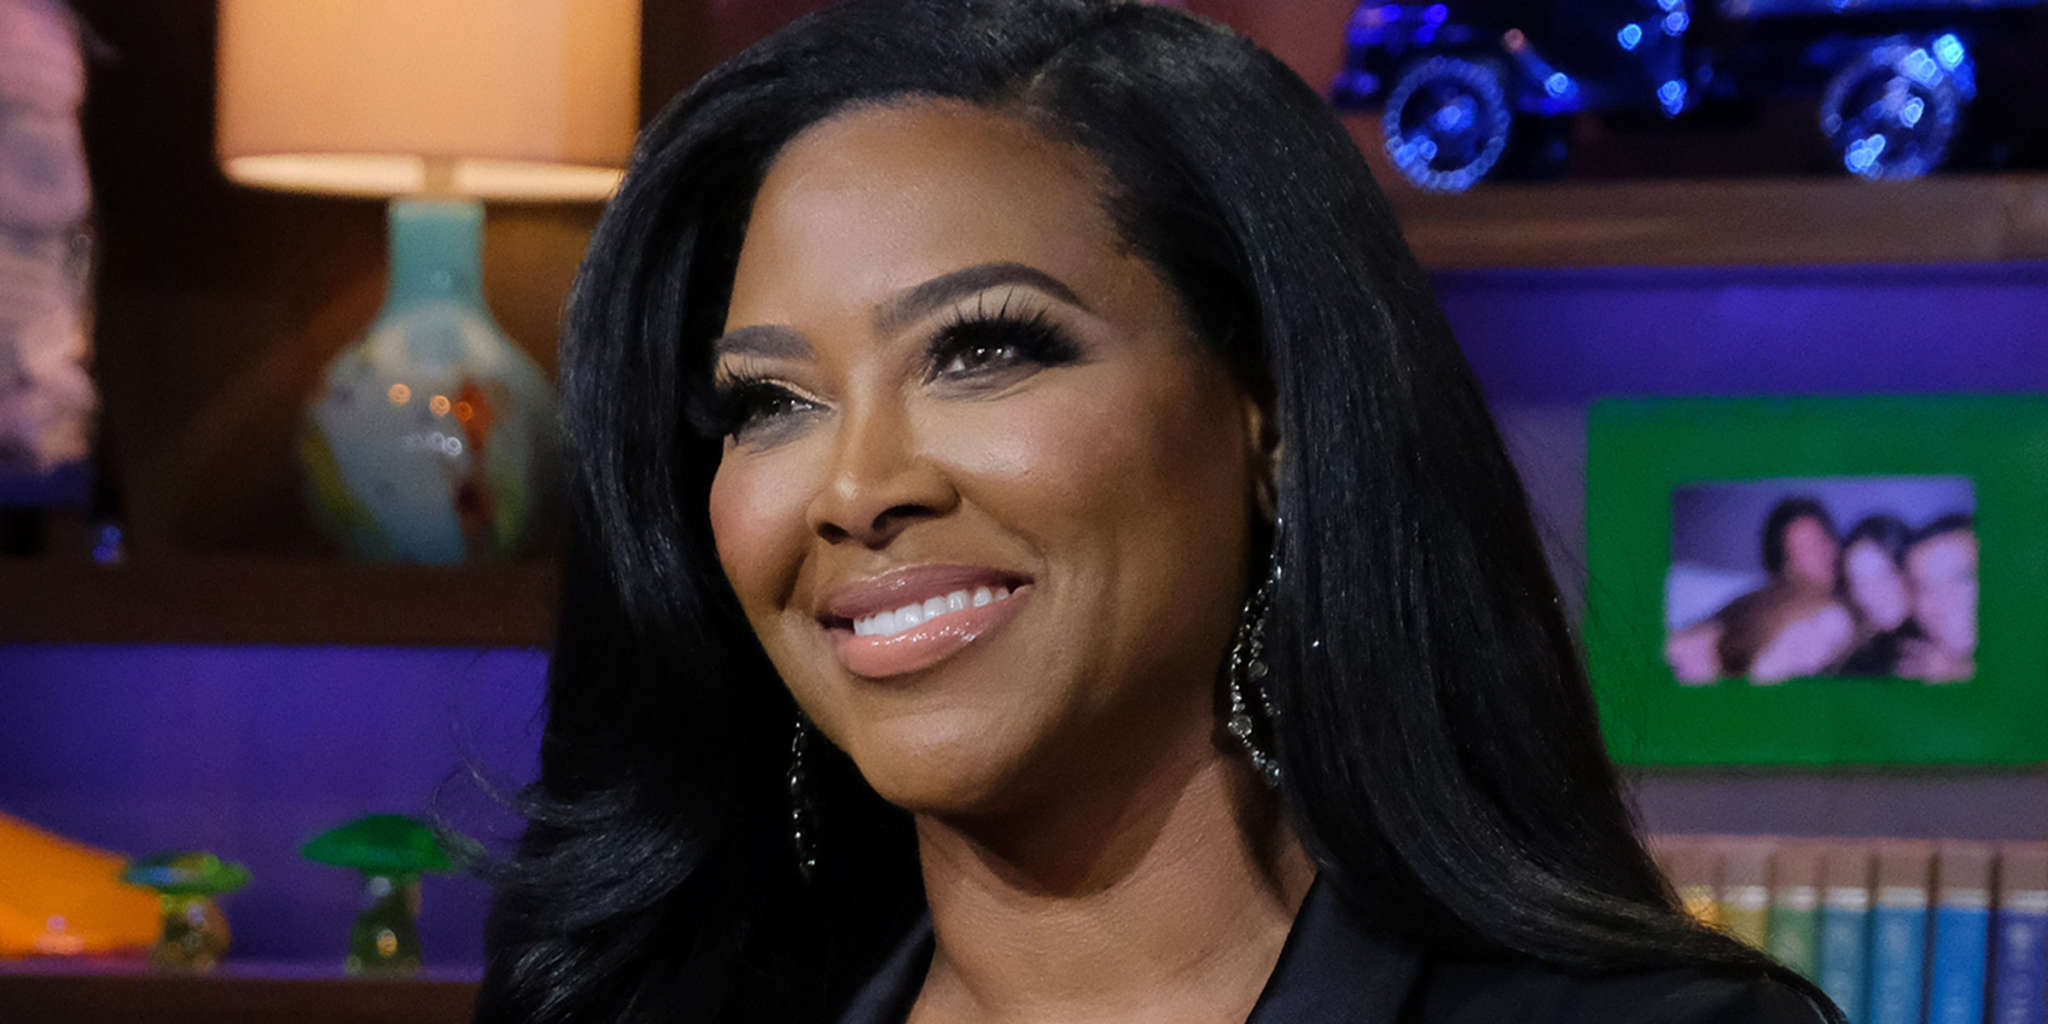 Kenya Moore Dresses Up For The 'Gram And Fans Are Here For This Hot Look